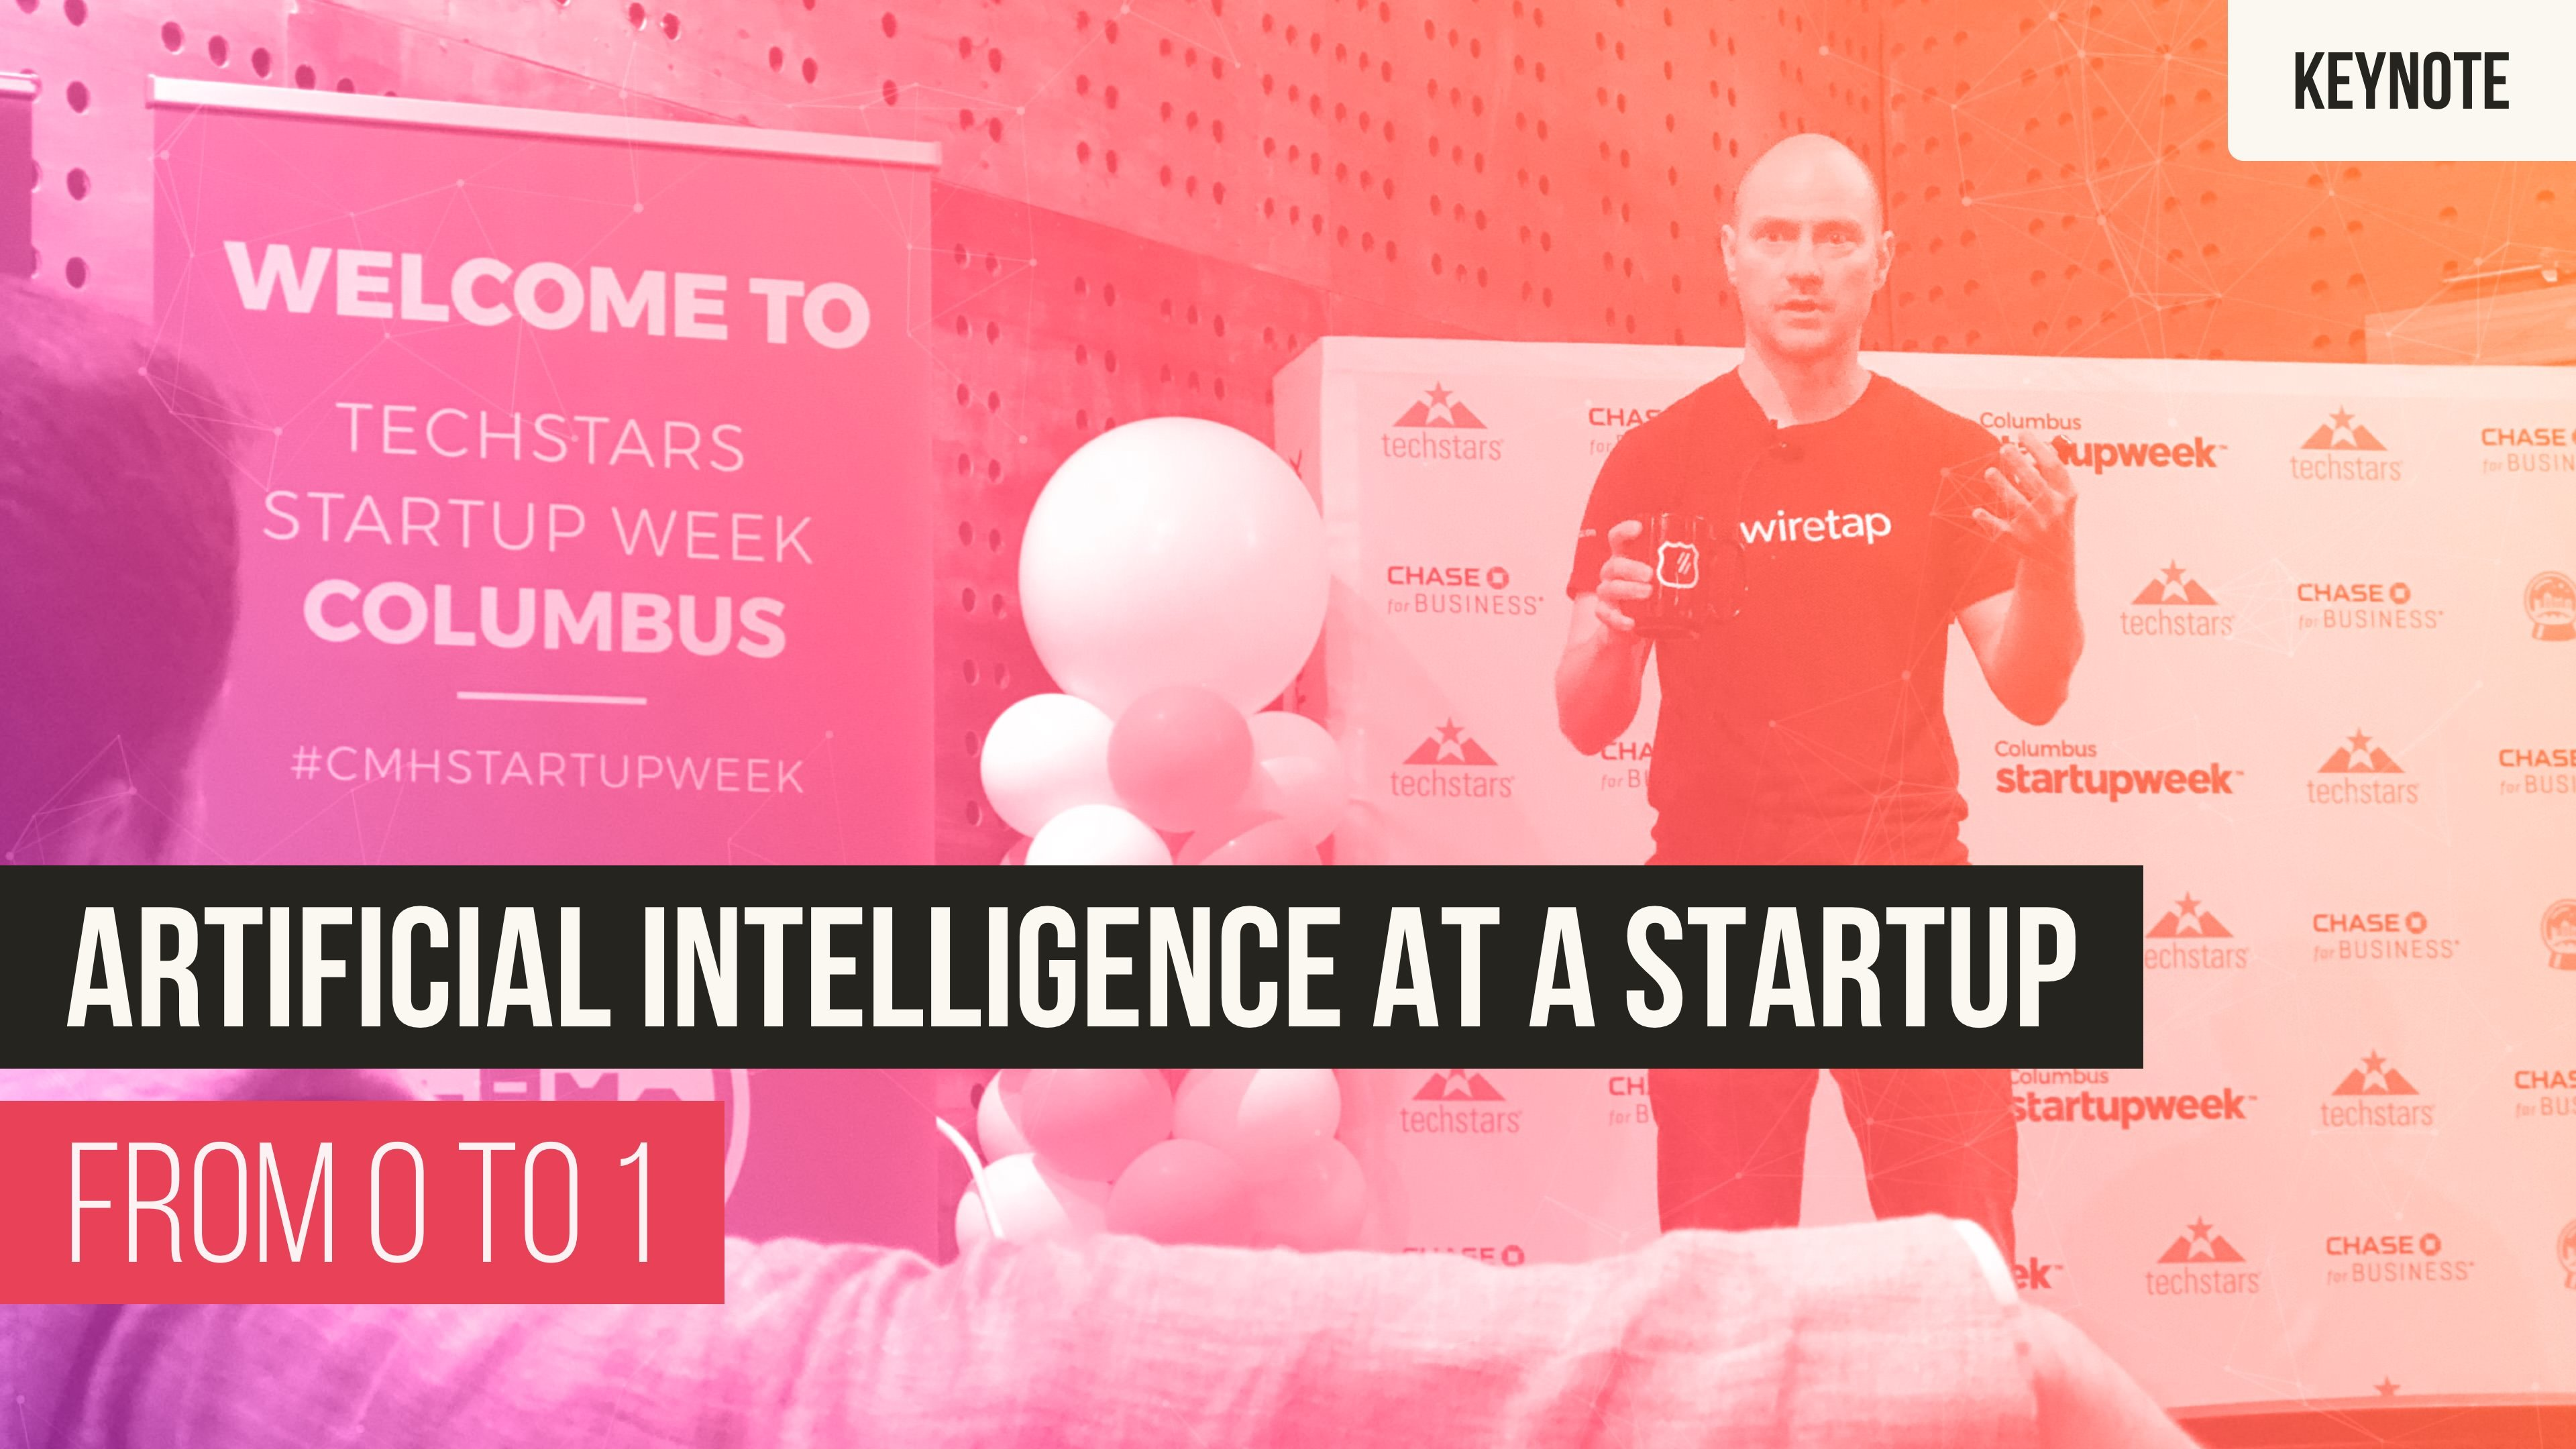 Artificial Intelligence (AI) at a Startup: From 0 to 1